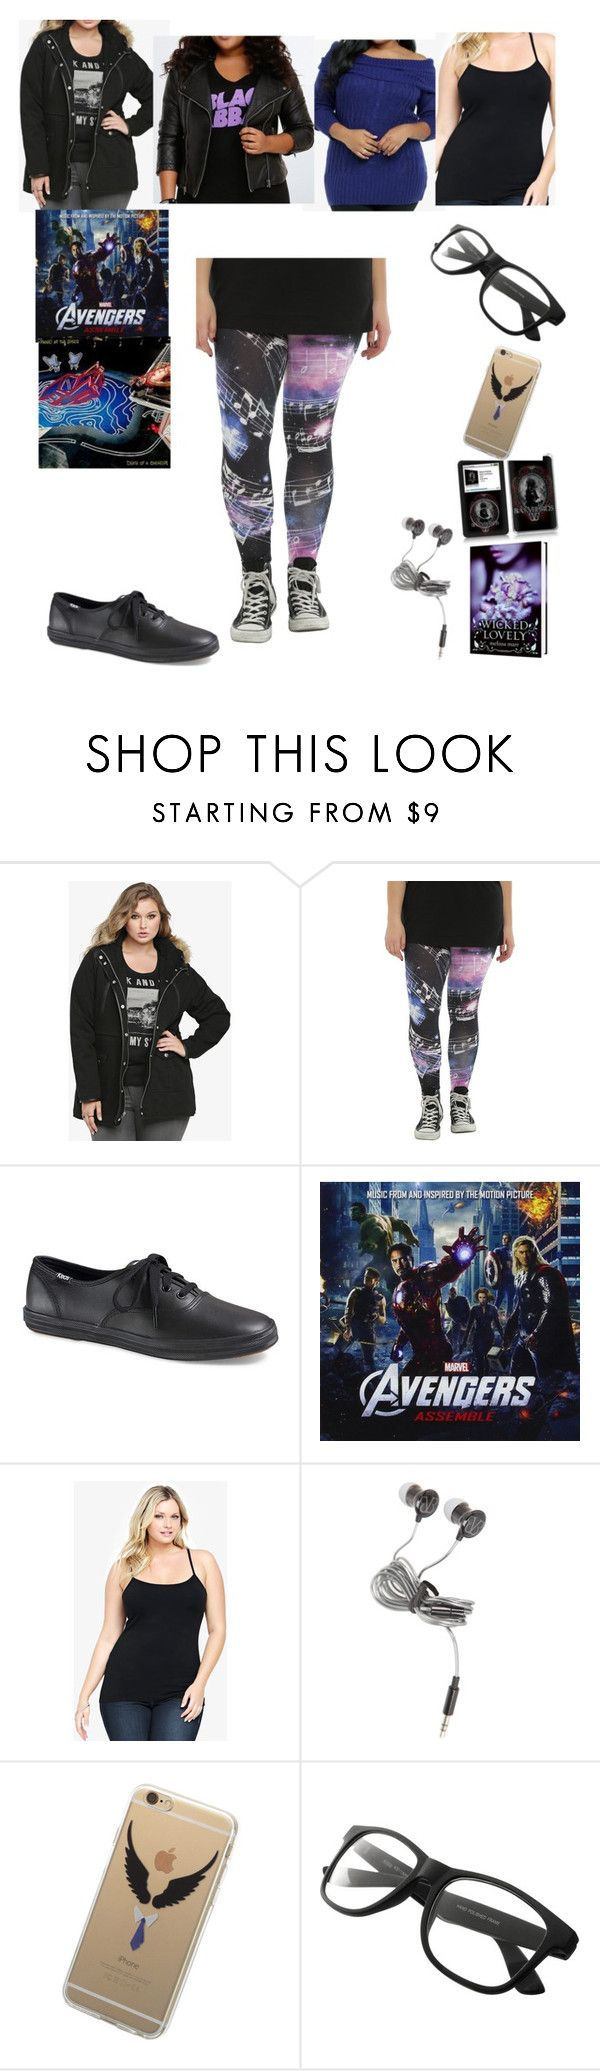 """It's Snowing, But It's Not To Bad"" by chrissy-cdm ❤ liked on Polyvore featuring Torrid, Forever 21 and plus size clothing"